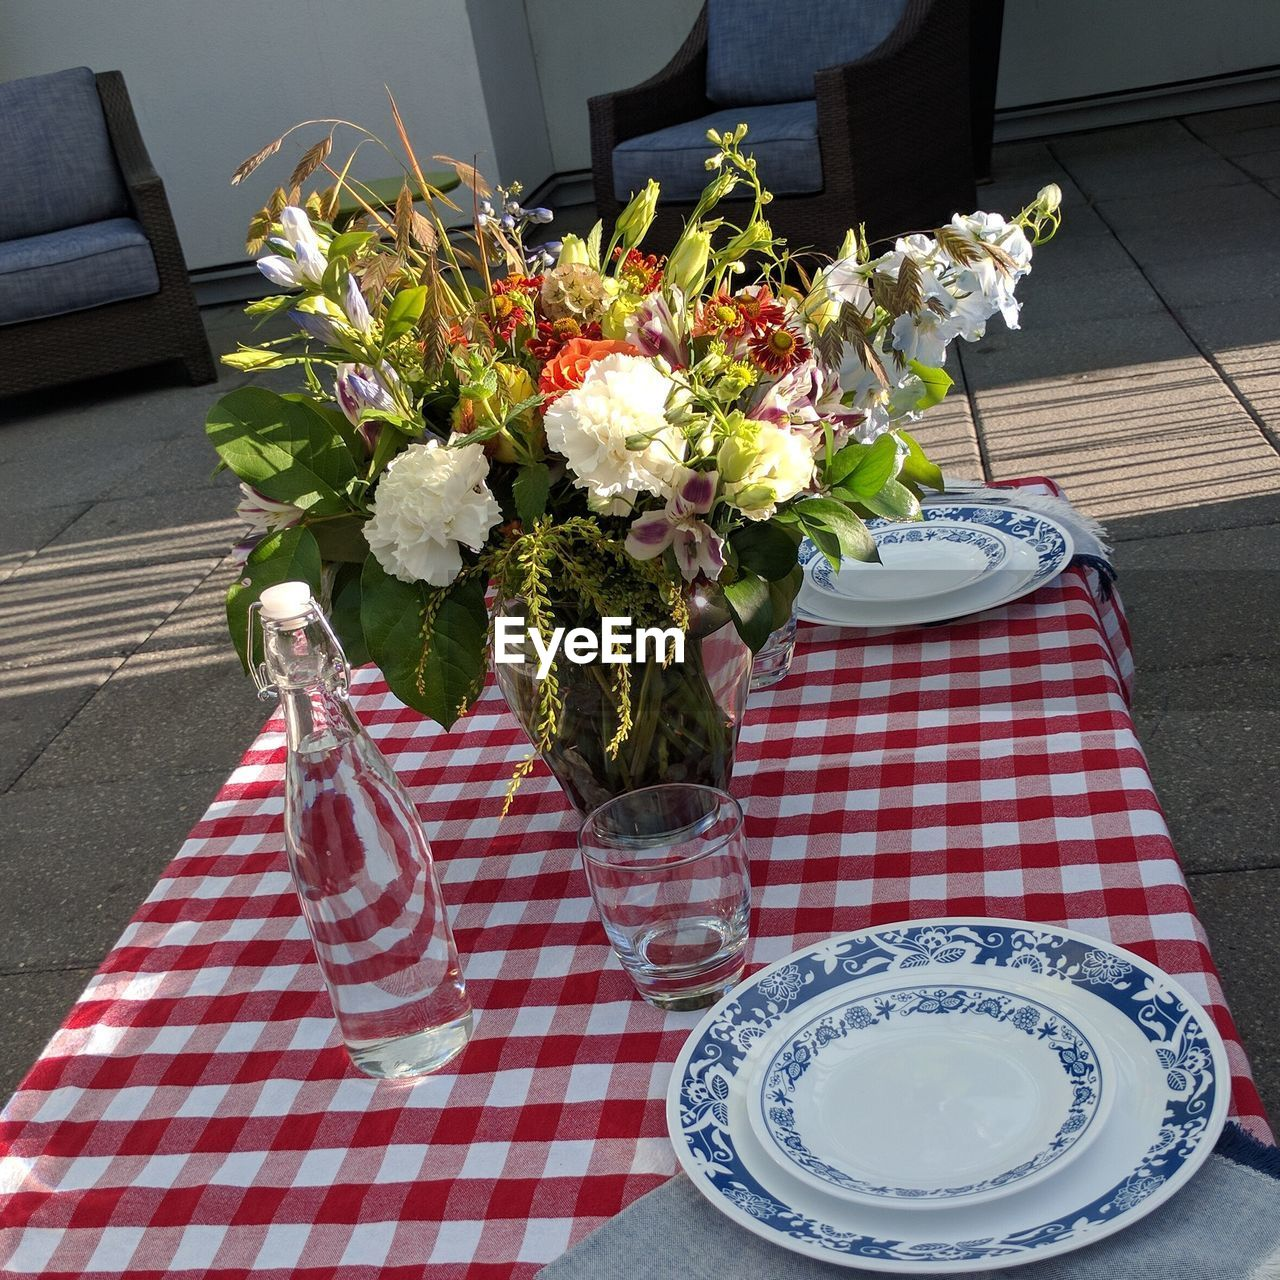 flower, table, vase, high angle view, food and drink, tablecloth, bouquet, freshness, no people, day, plate, indoors